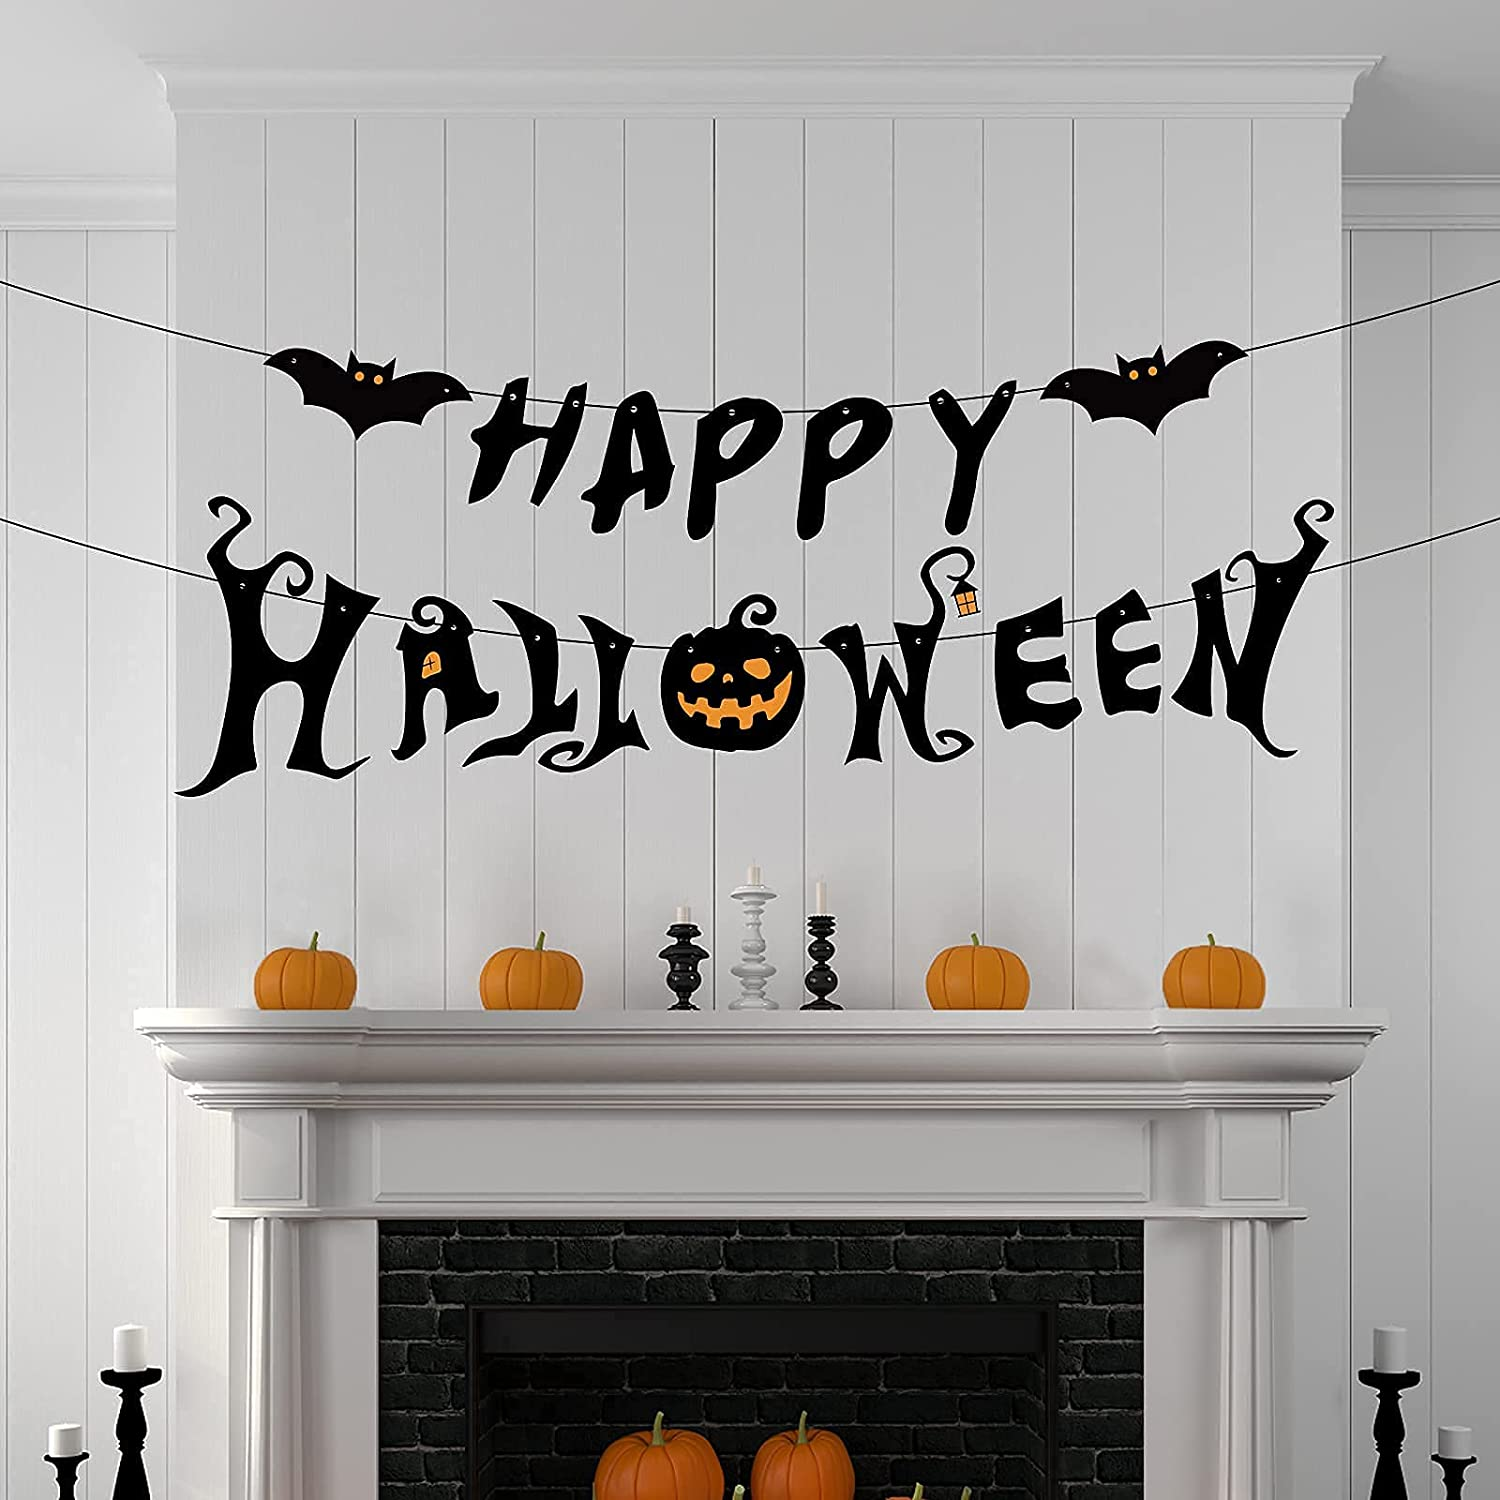 Halloween Party Decorations - Happy Halloween Banner - Halloween Decor Indoor for Home Office Party Fireplace Mantle Garland